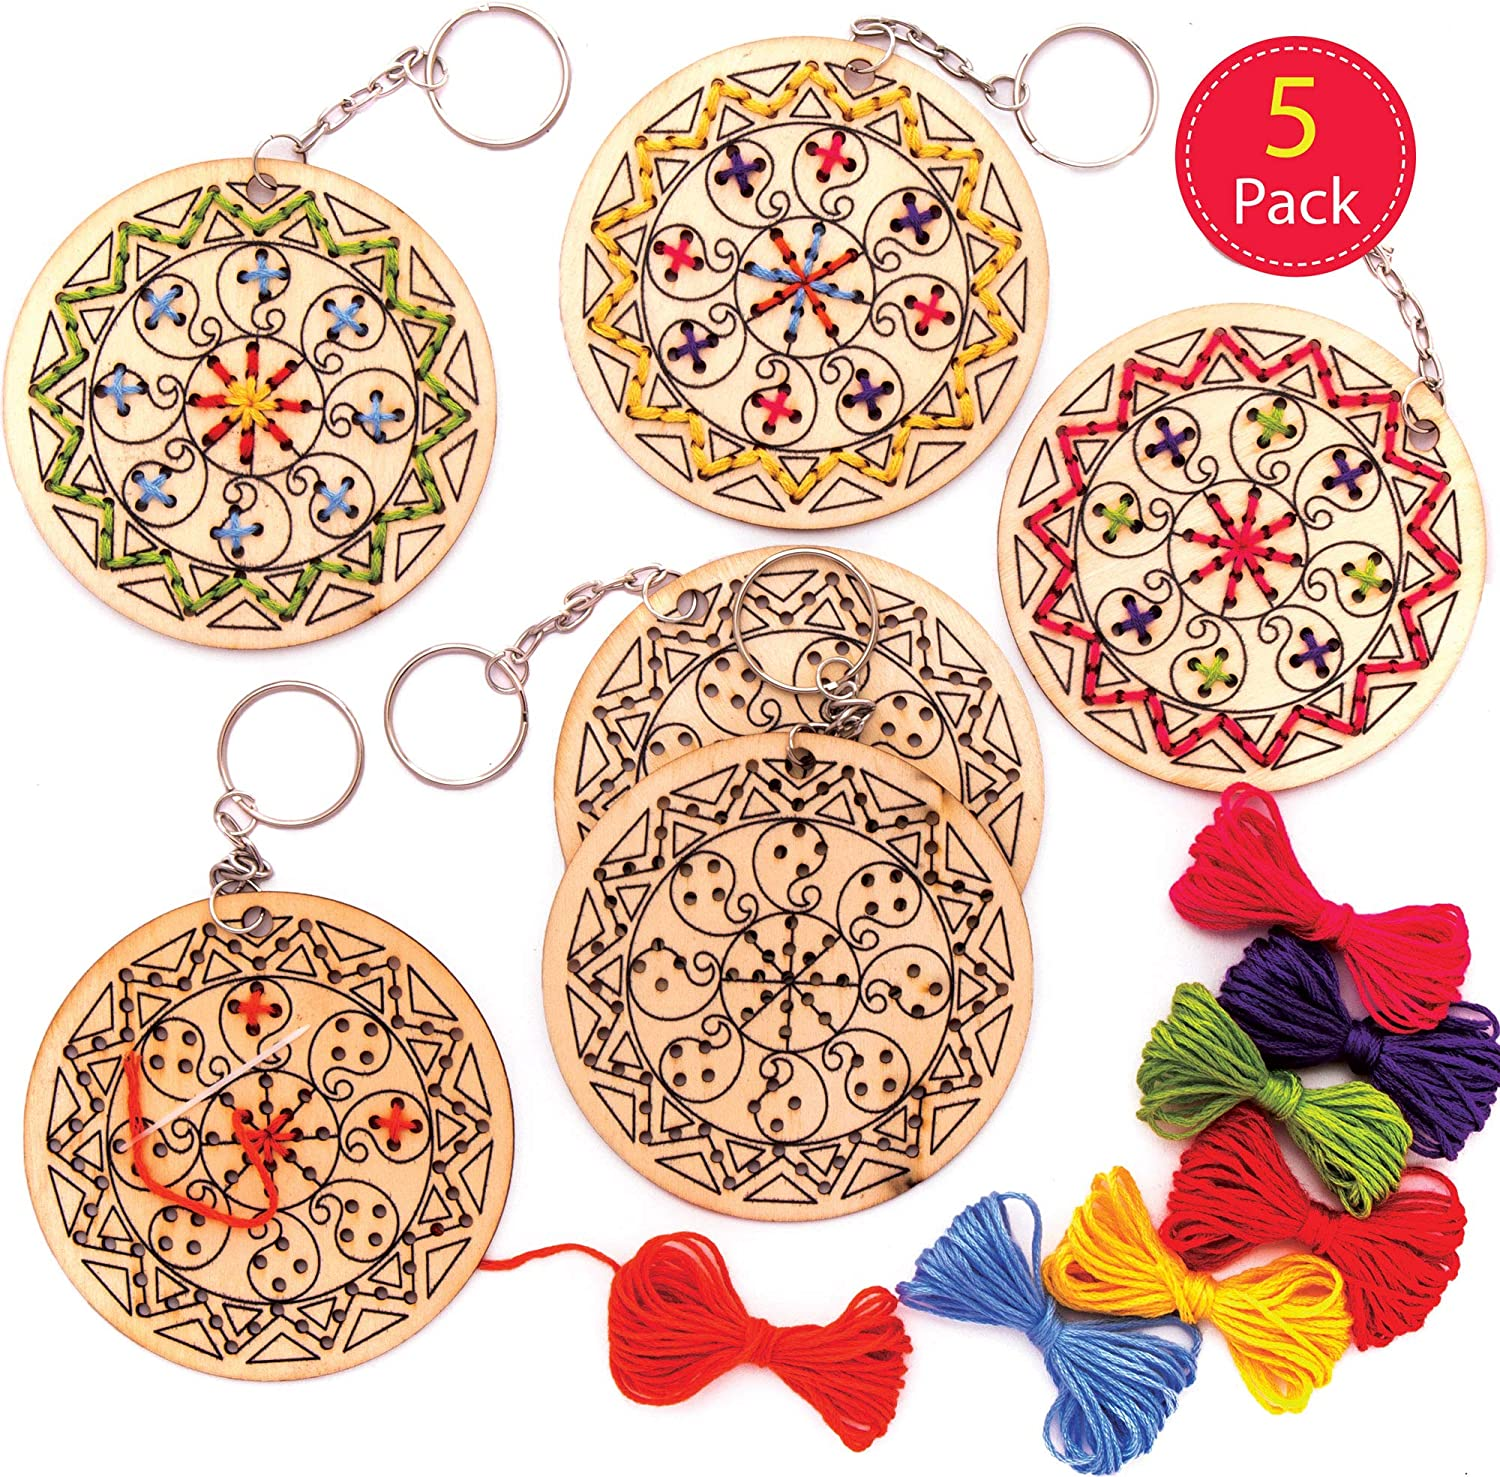 Arts and Crafts for Kids Pack of 5 Baker Ross Rangoli Wooden Cross Stitch Keyring Kits